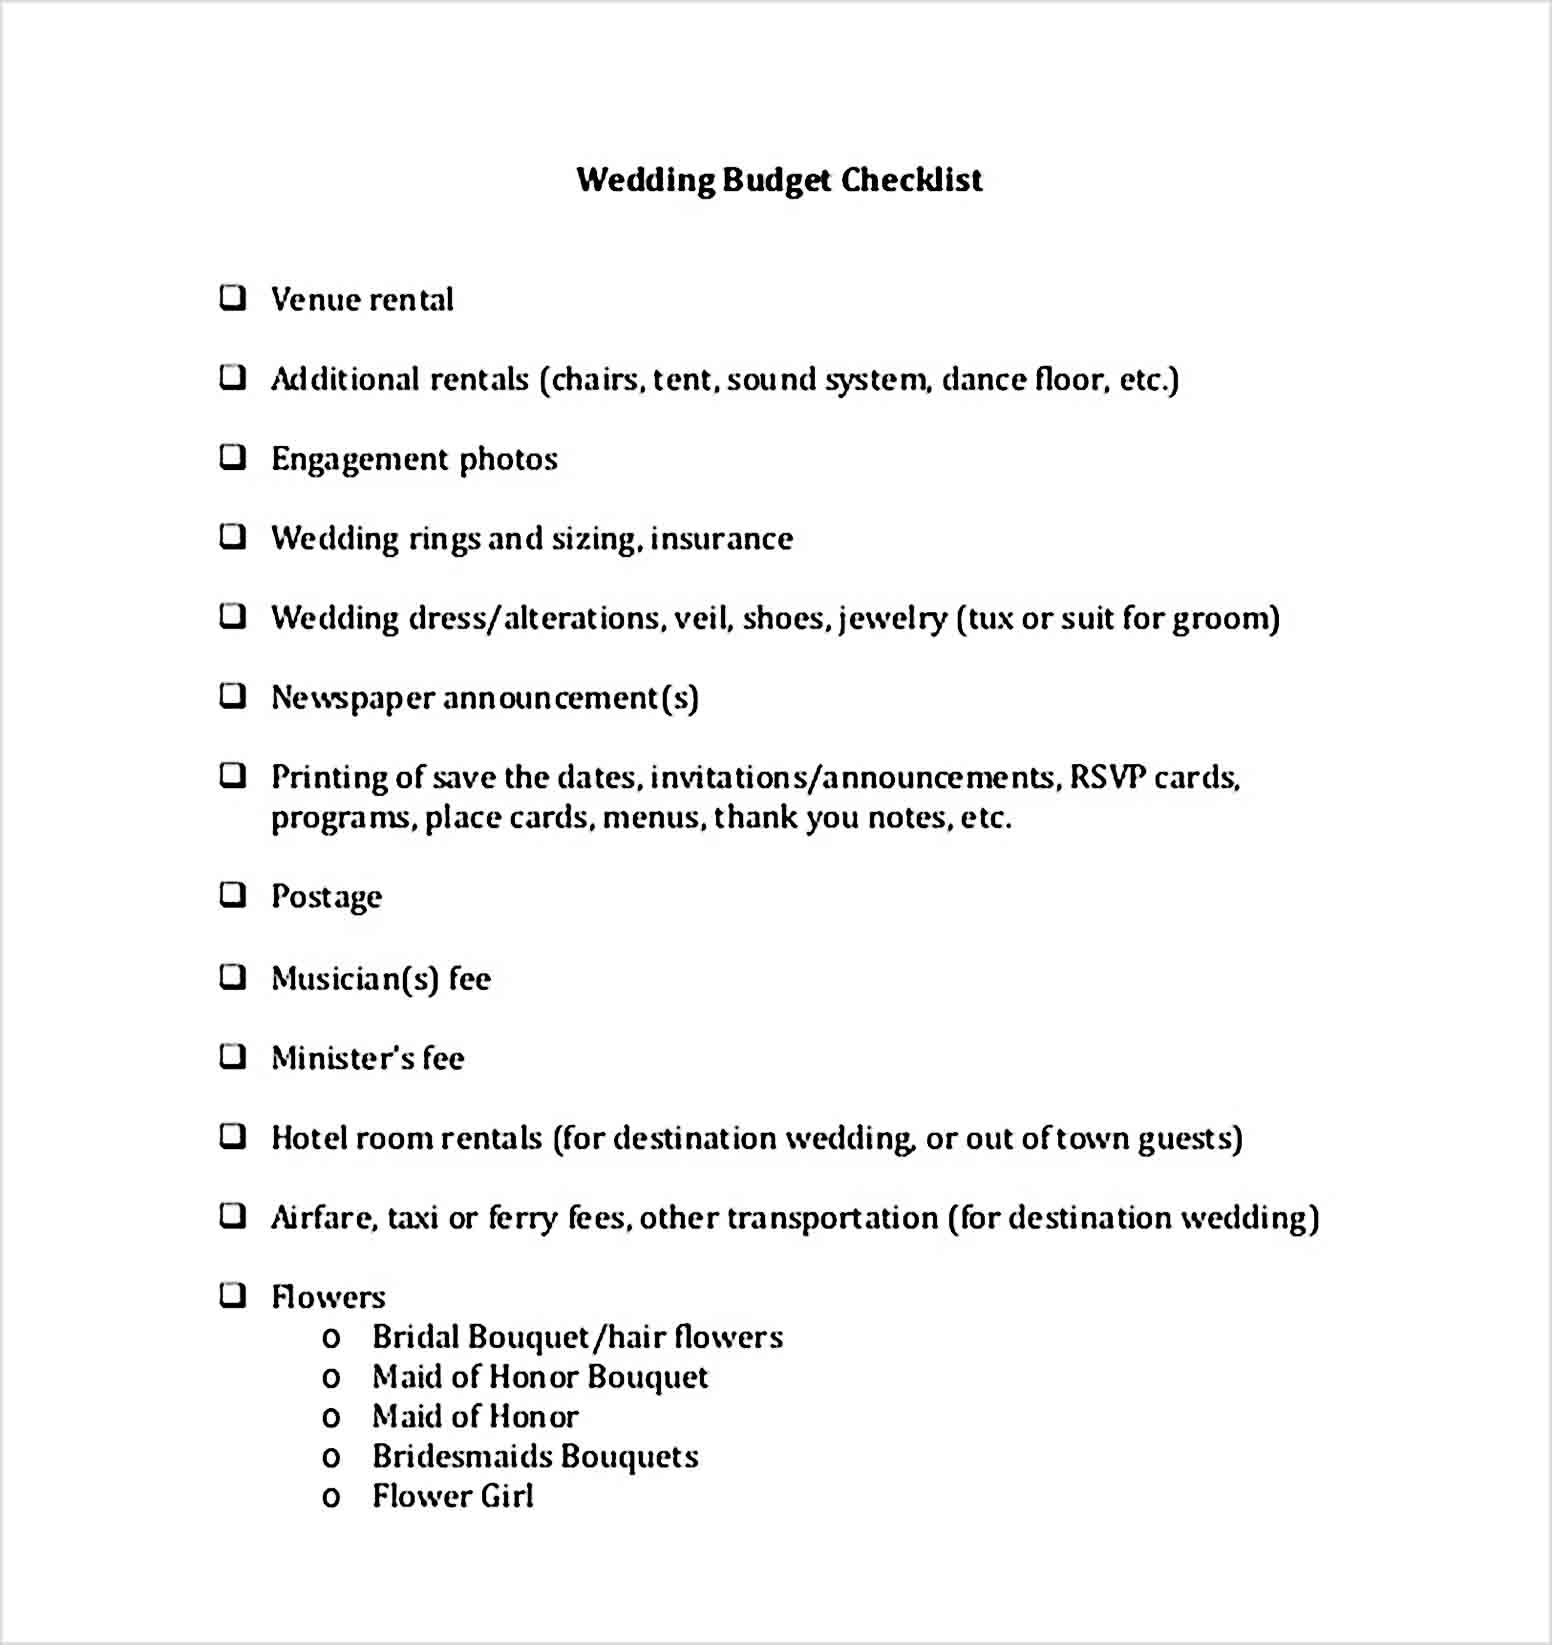 Wedding Budget Checklist Template For Download